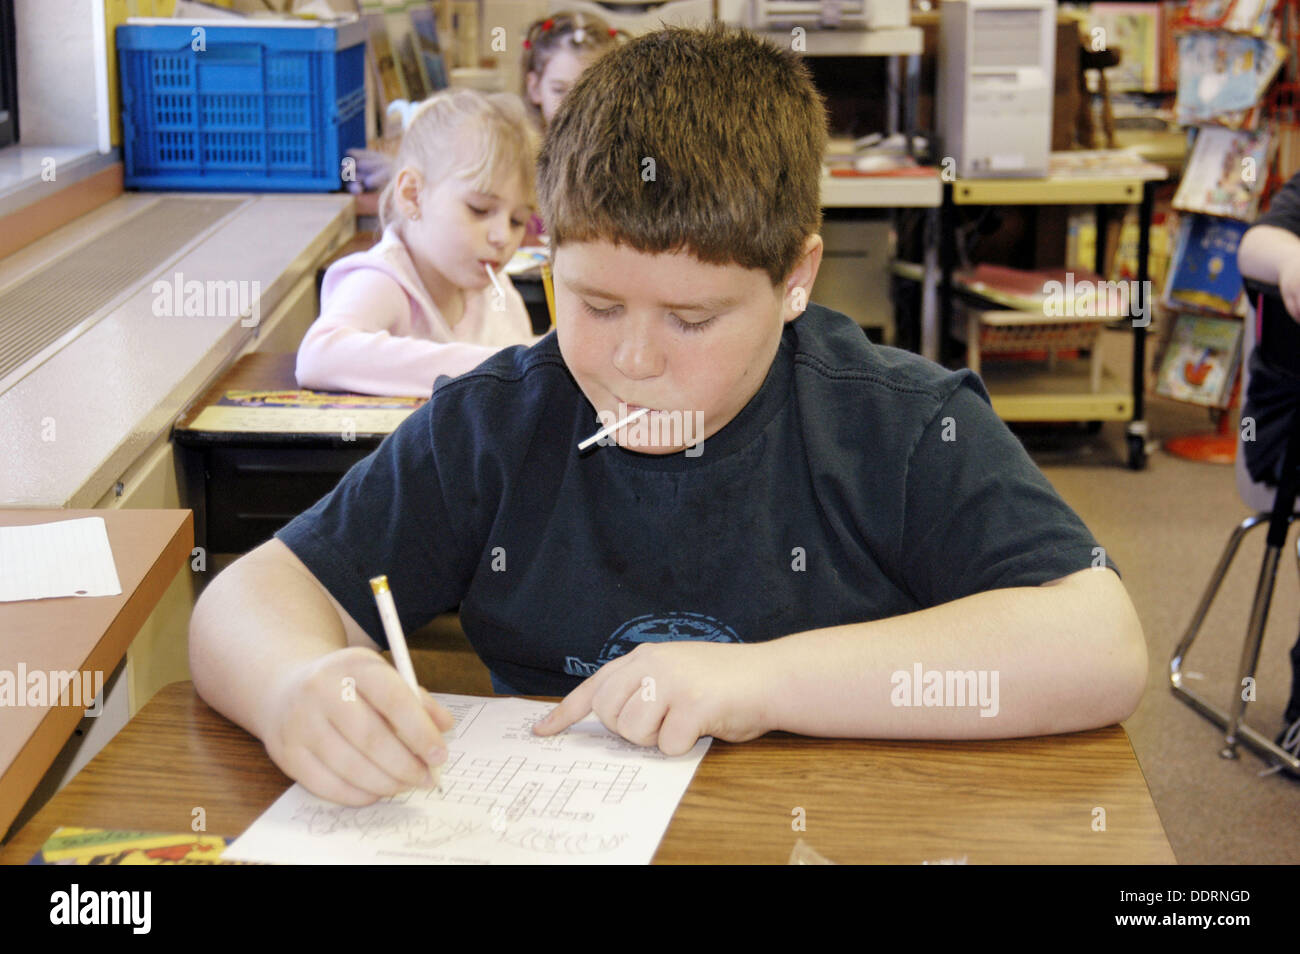 3rd students work on an individual basis. Stock Photo